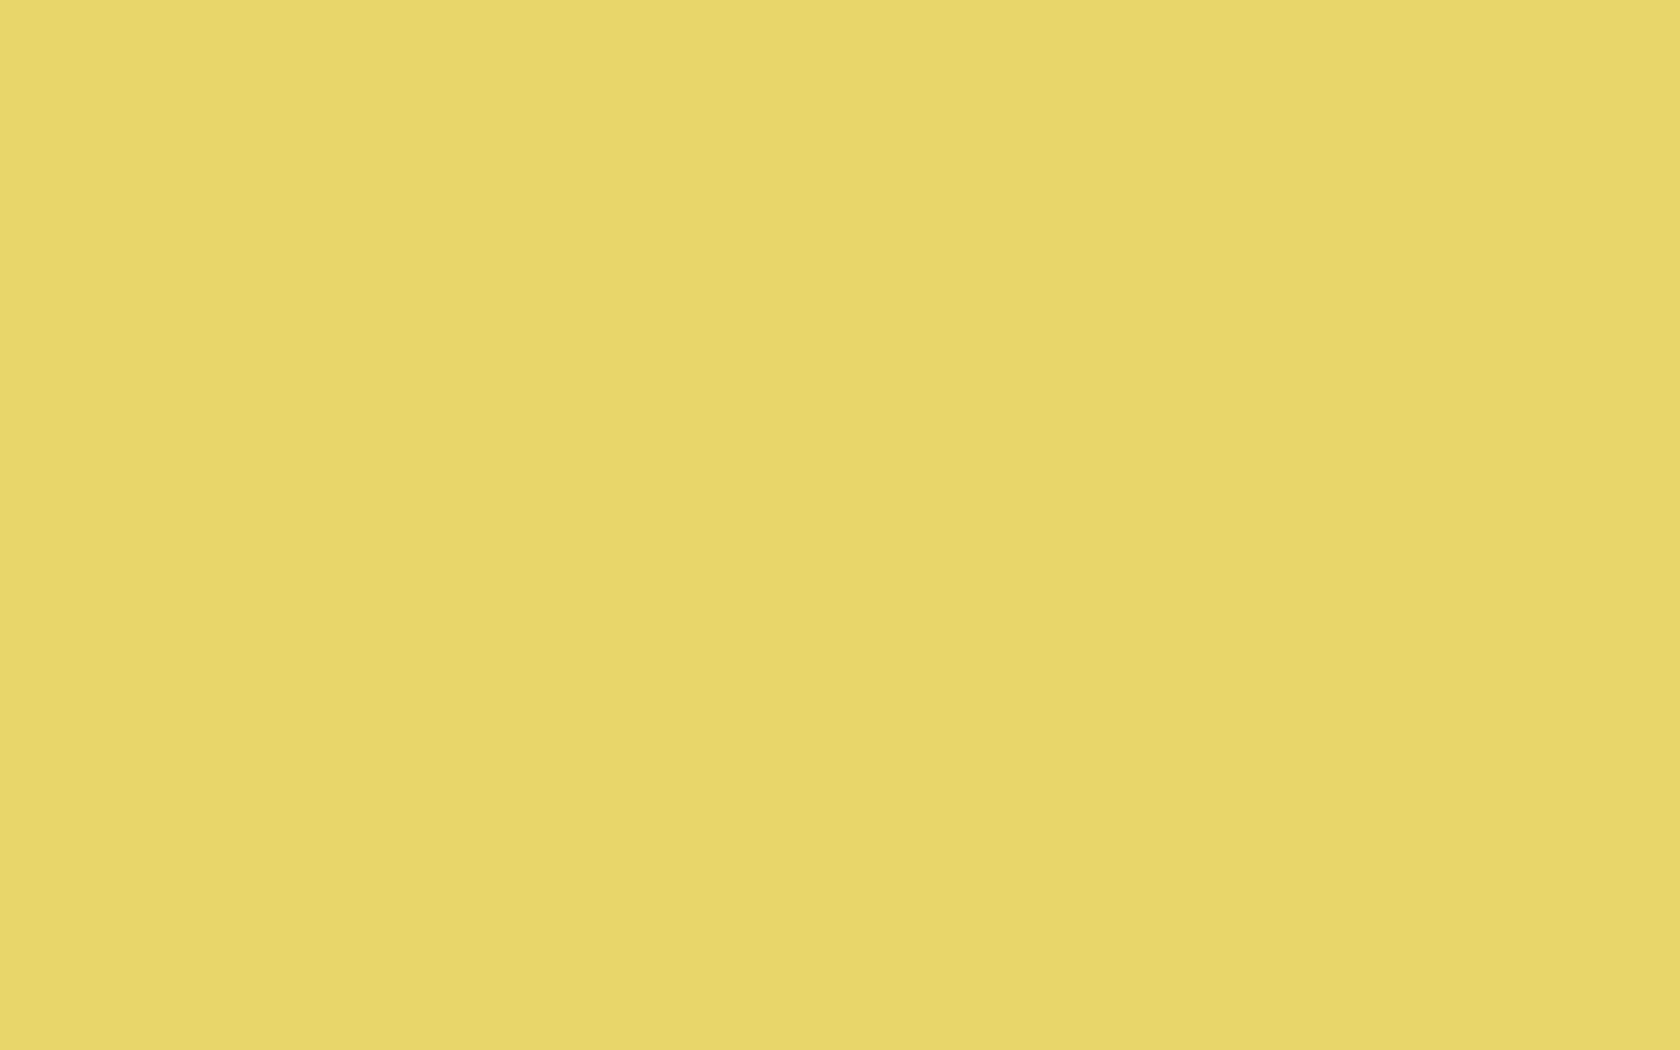 1680x1050 Hansa Yellow Solid Color Background